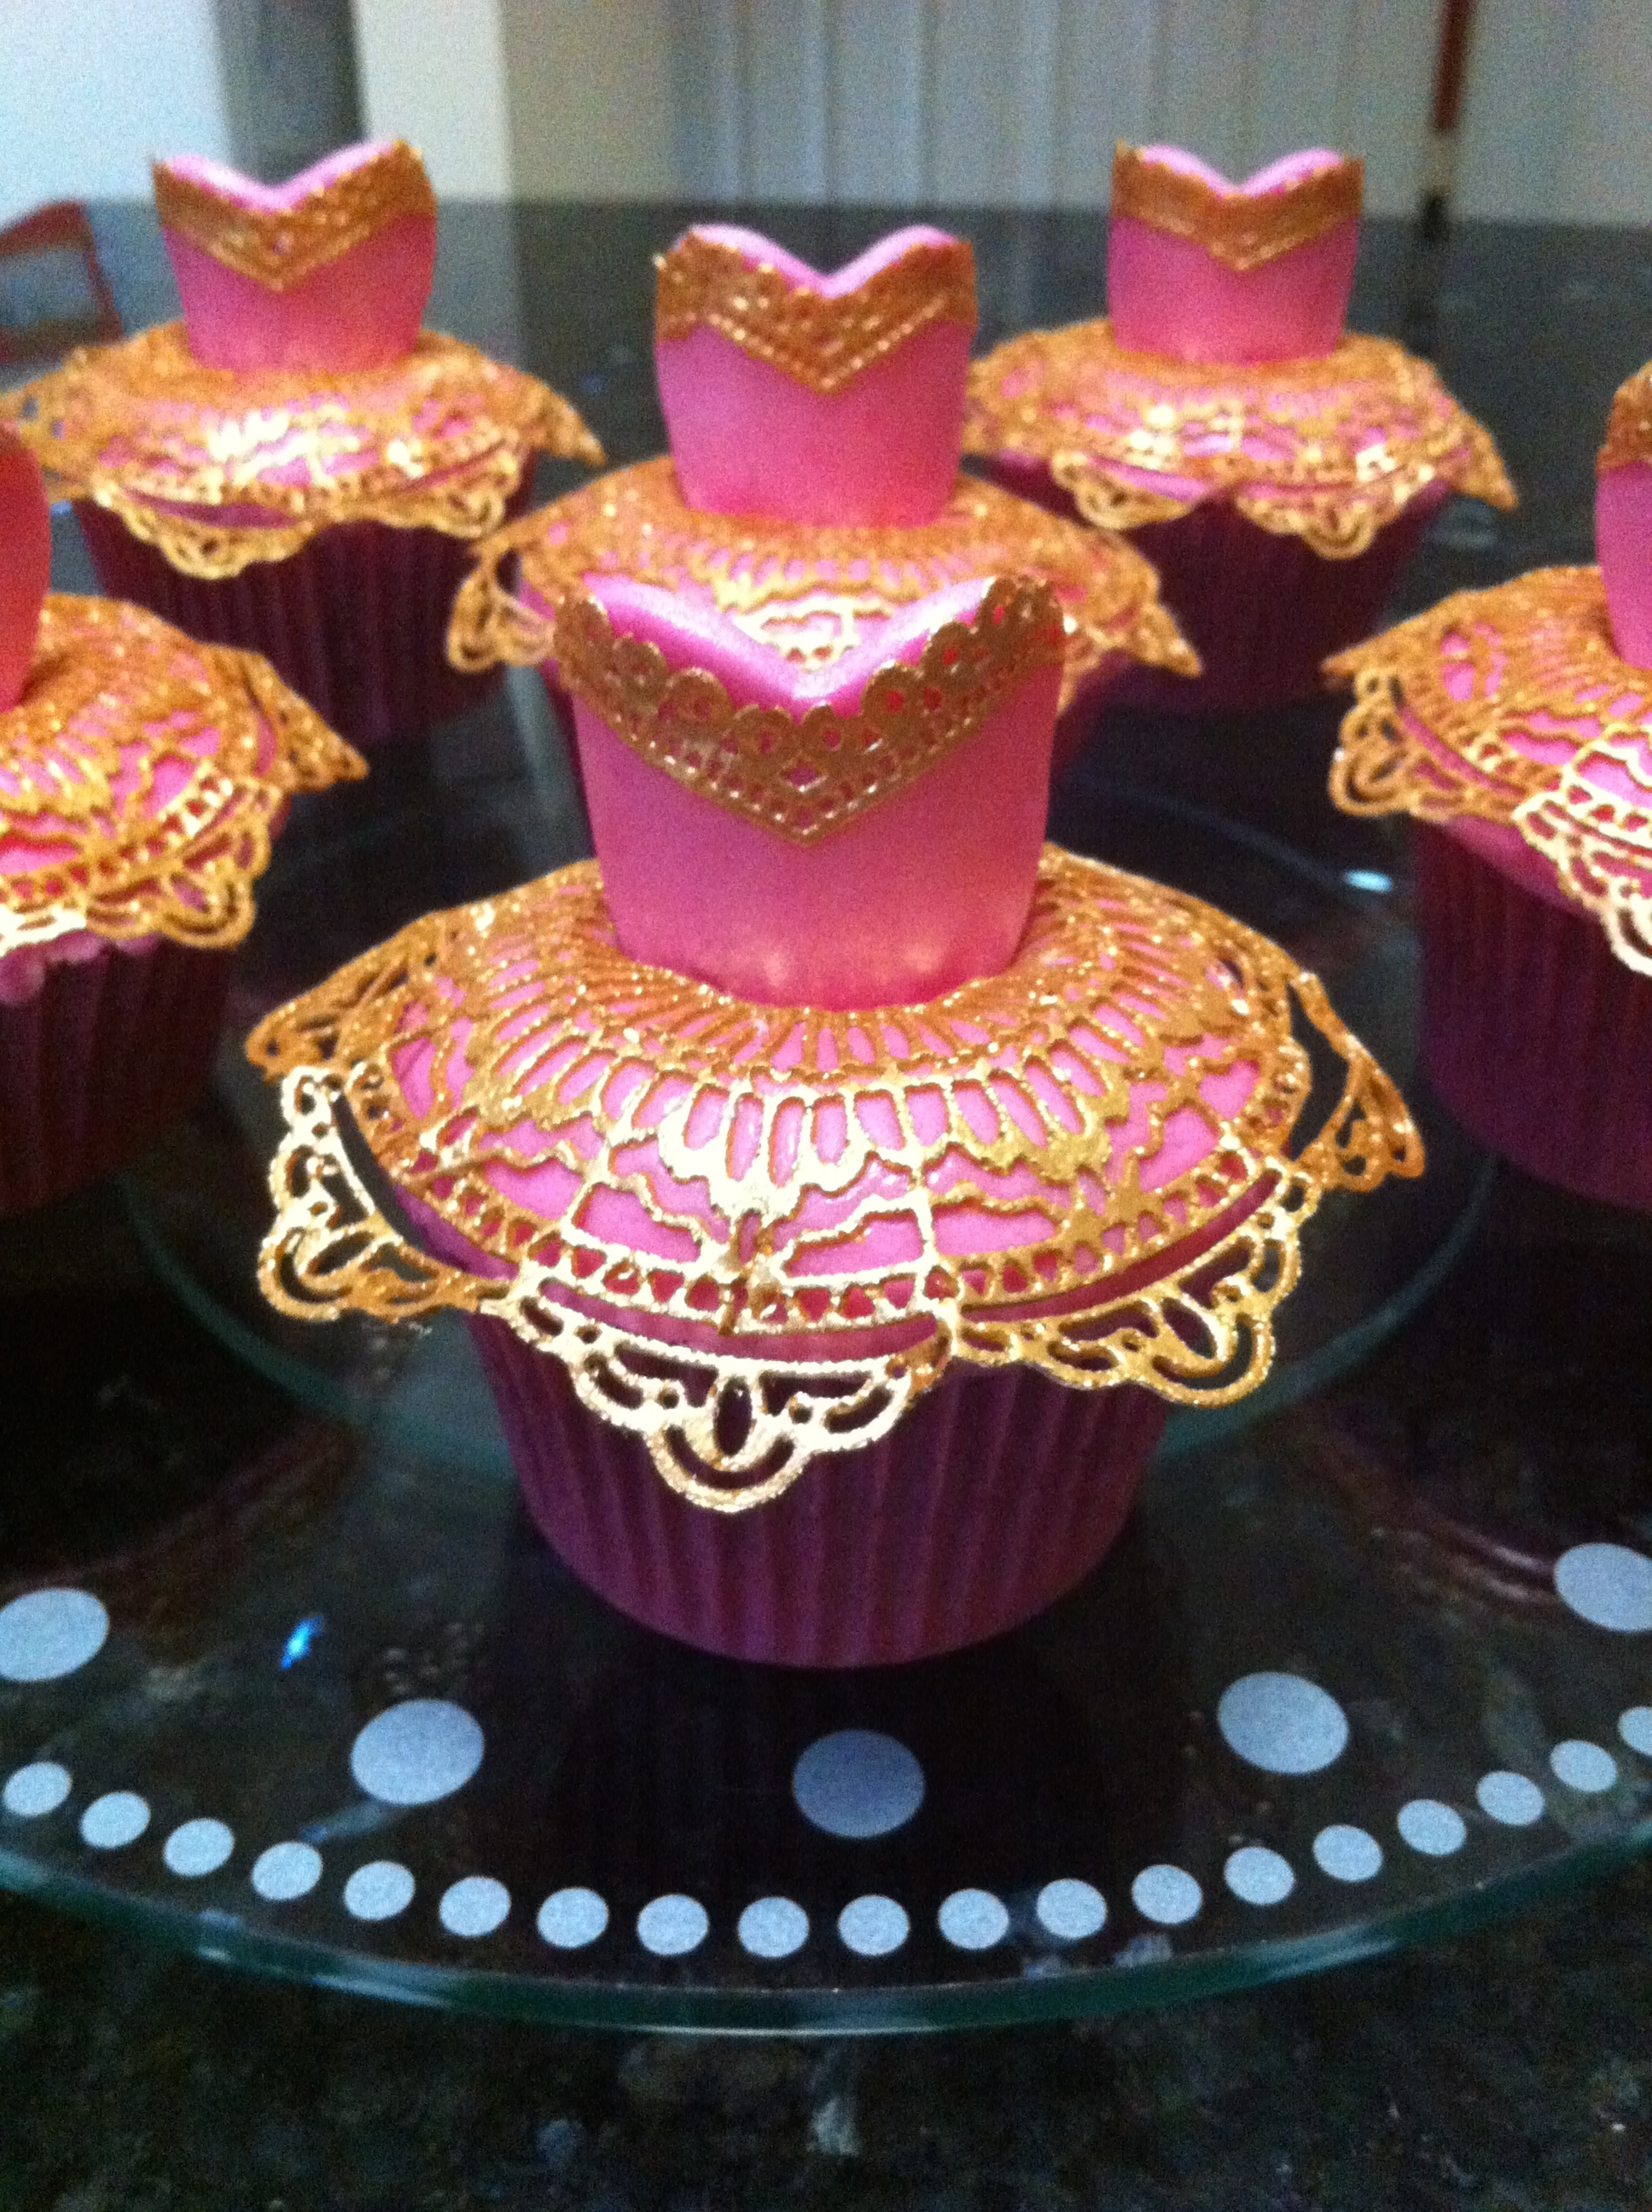 Edible Lace and Fondant Cup Cakes